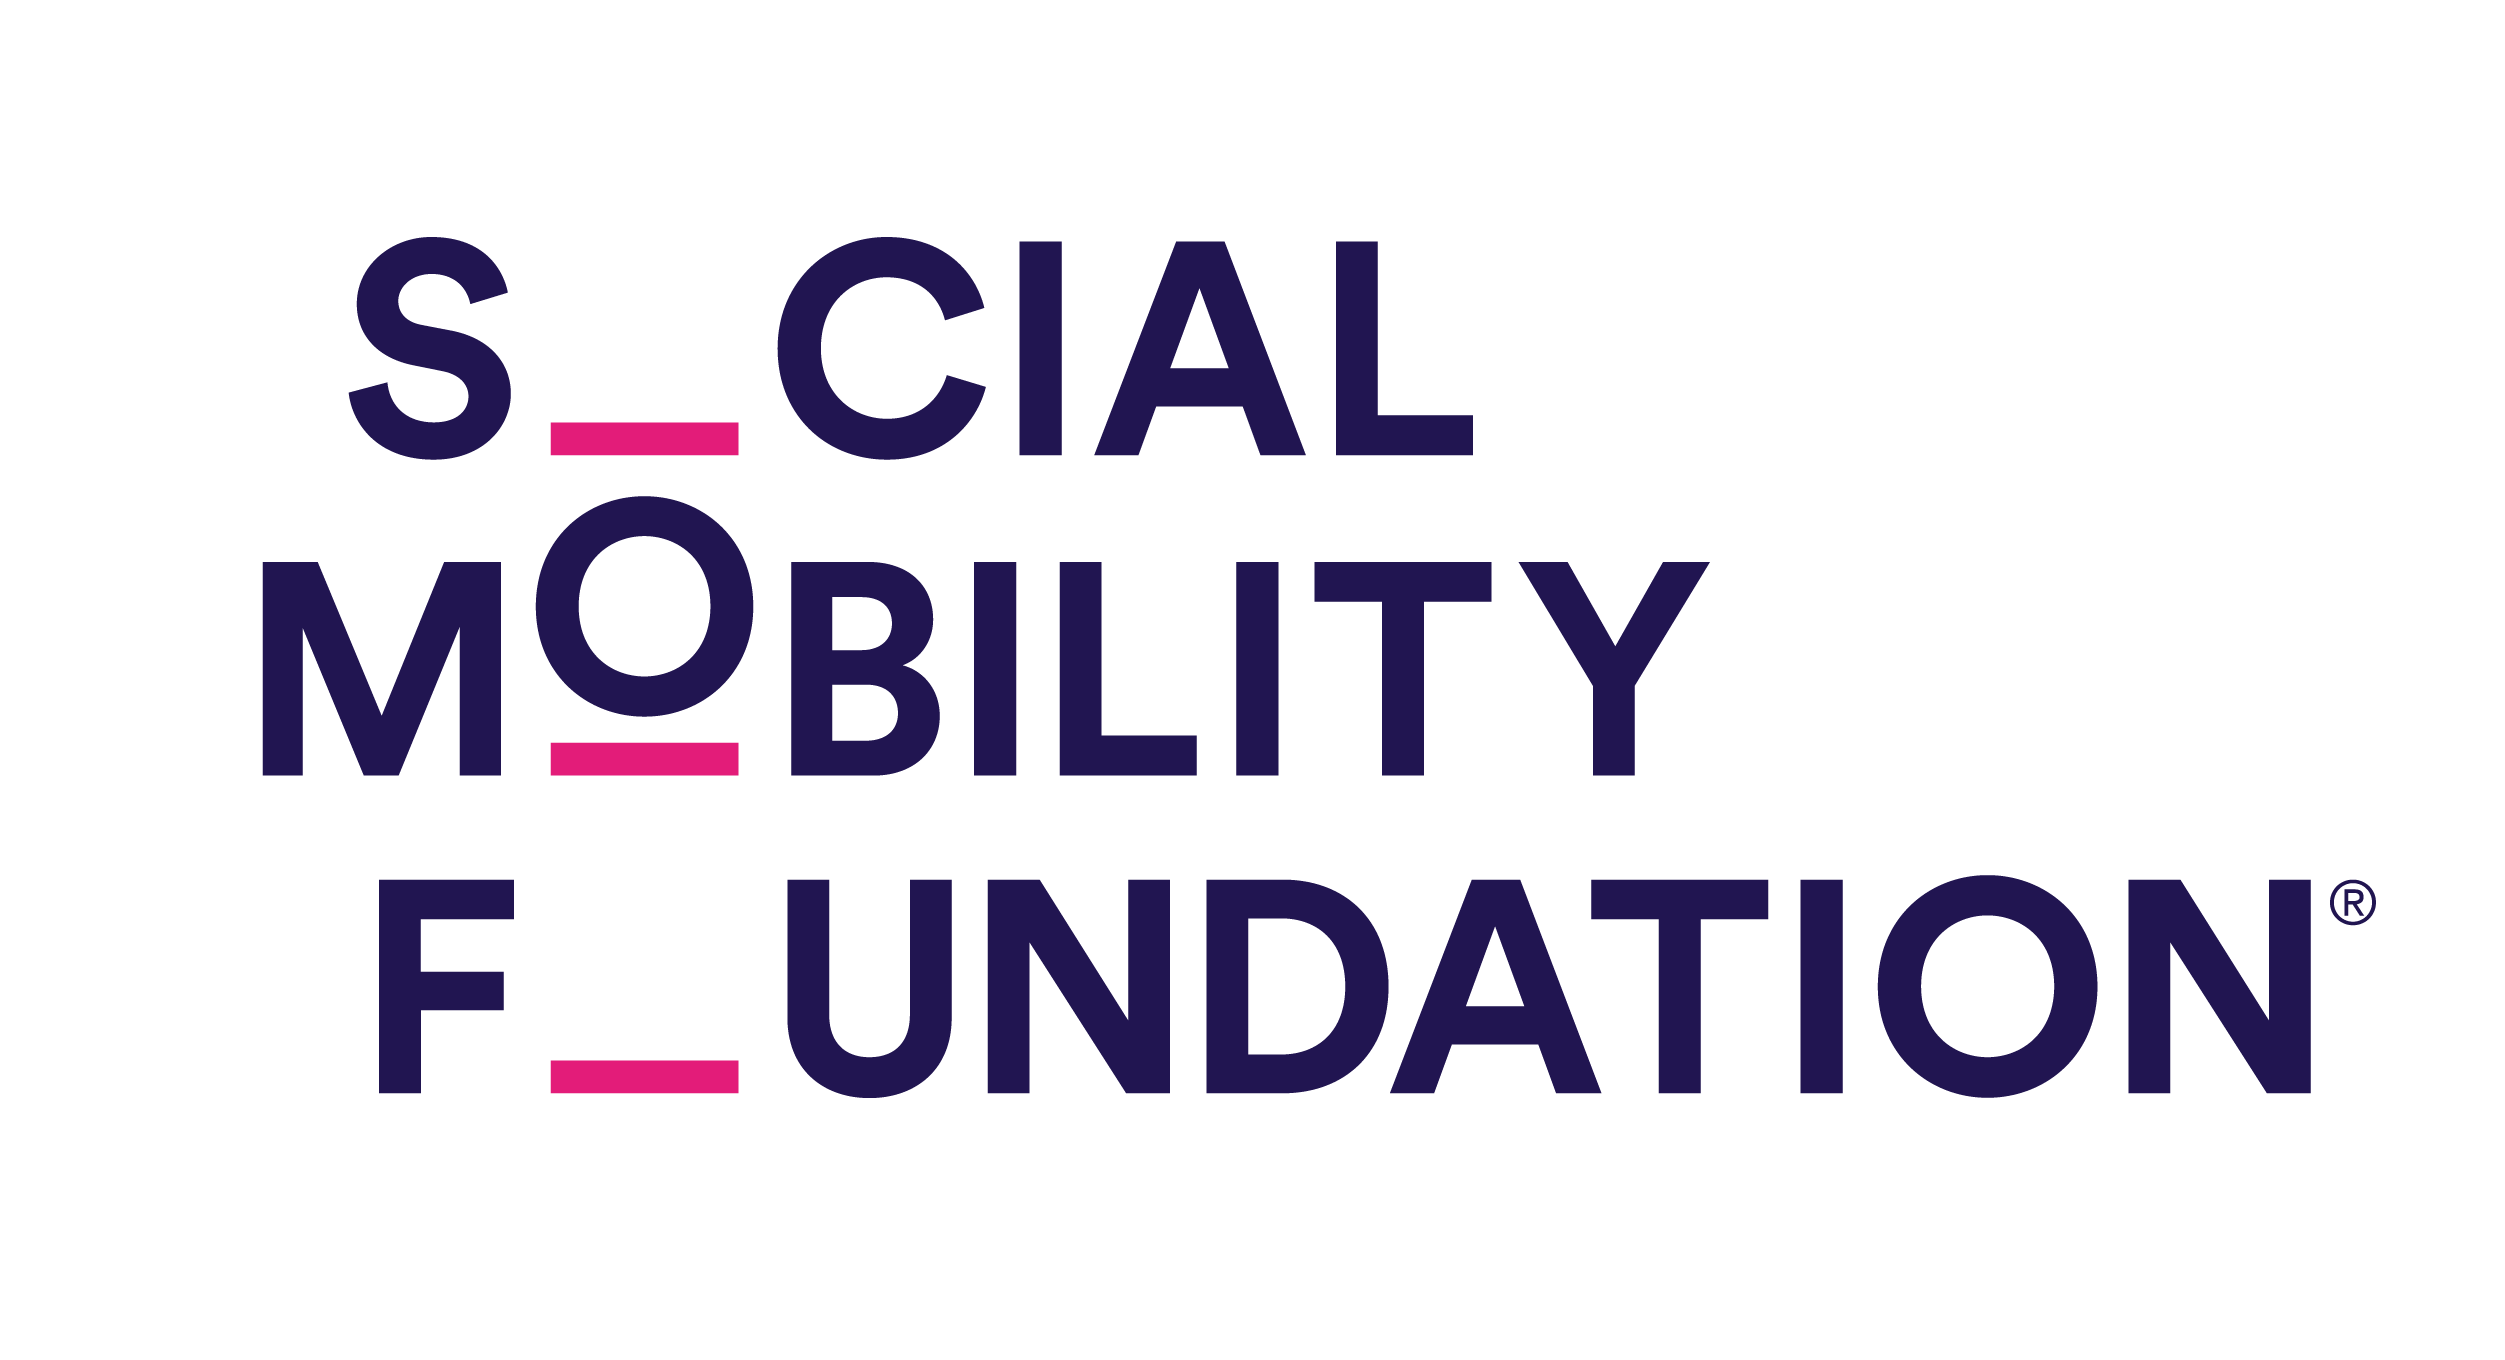 The Social Mobility Foundation (SMF)